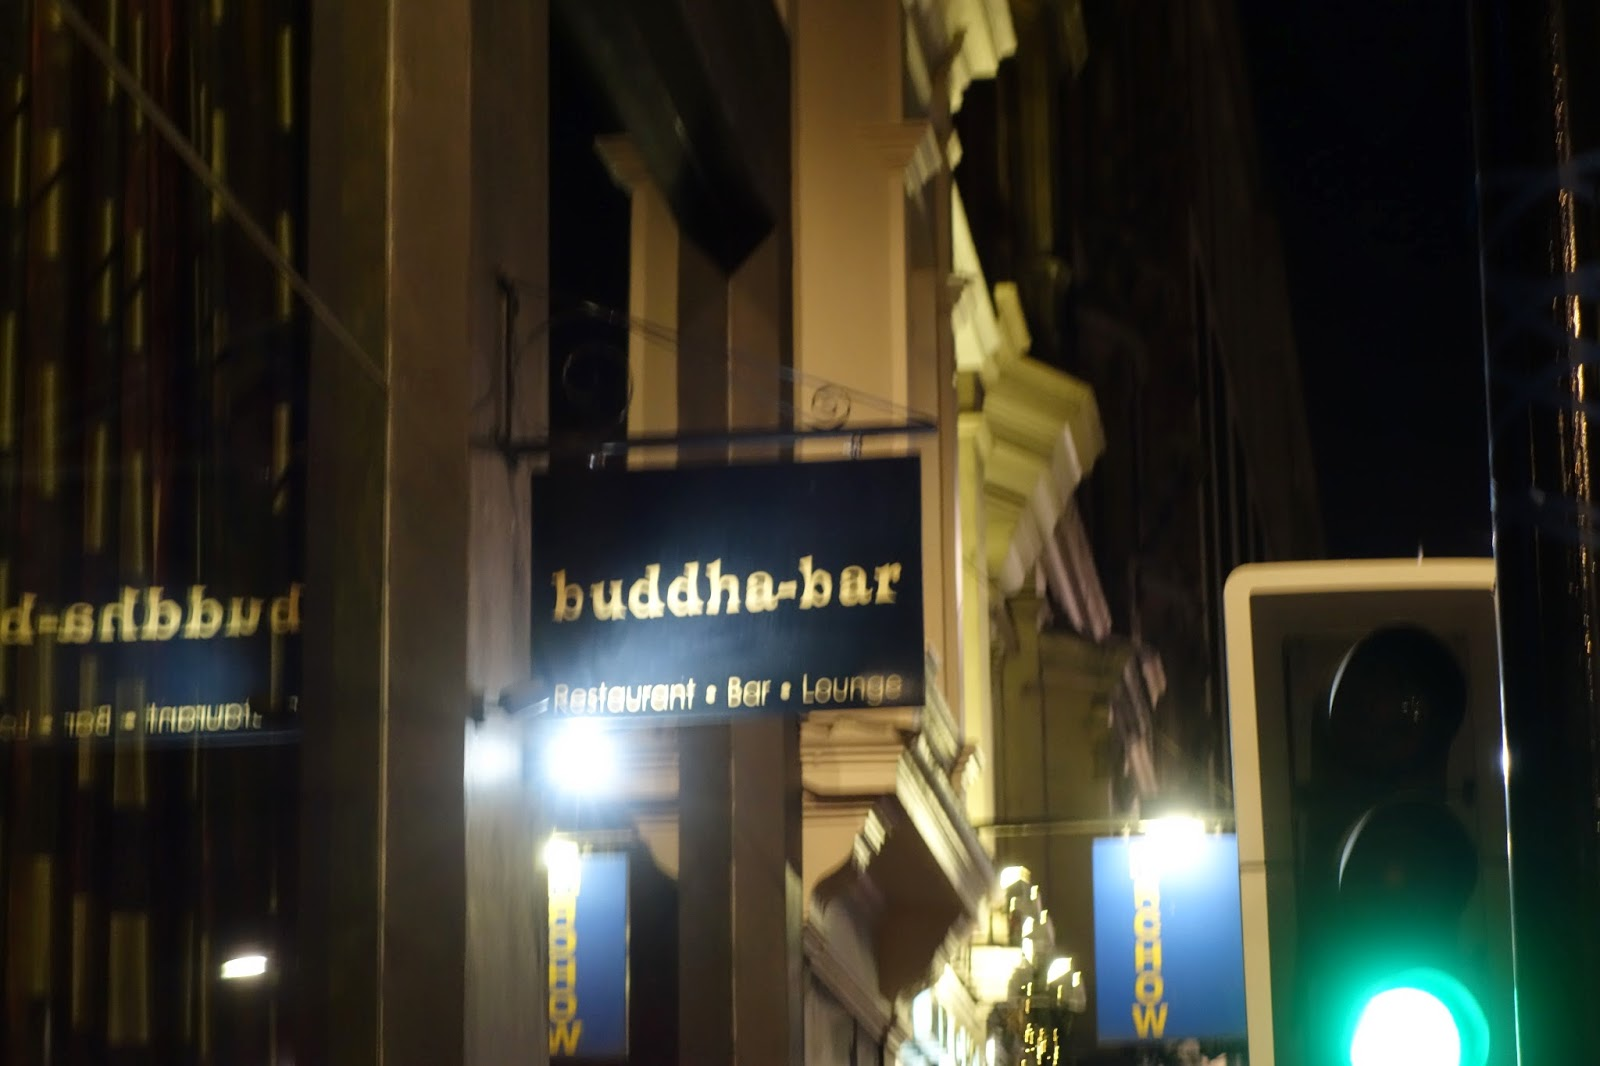 Buddha bar sign